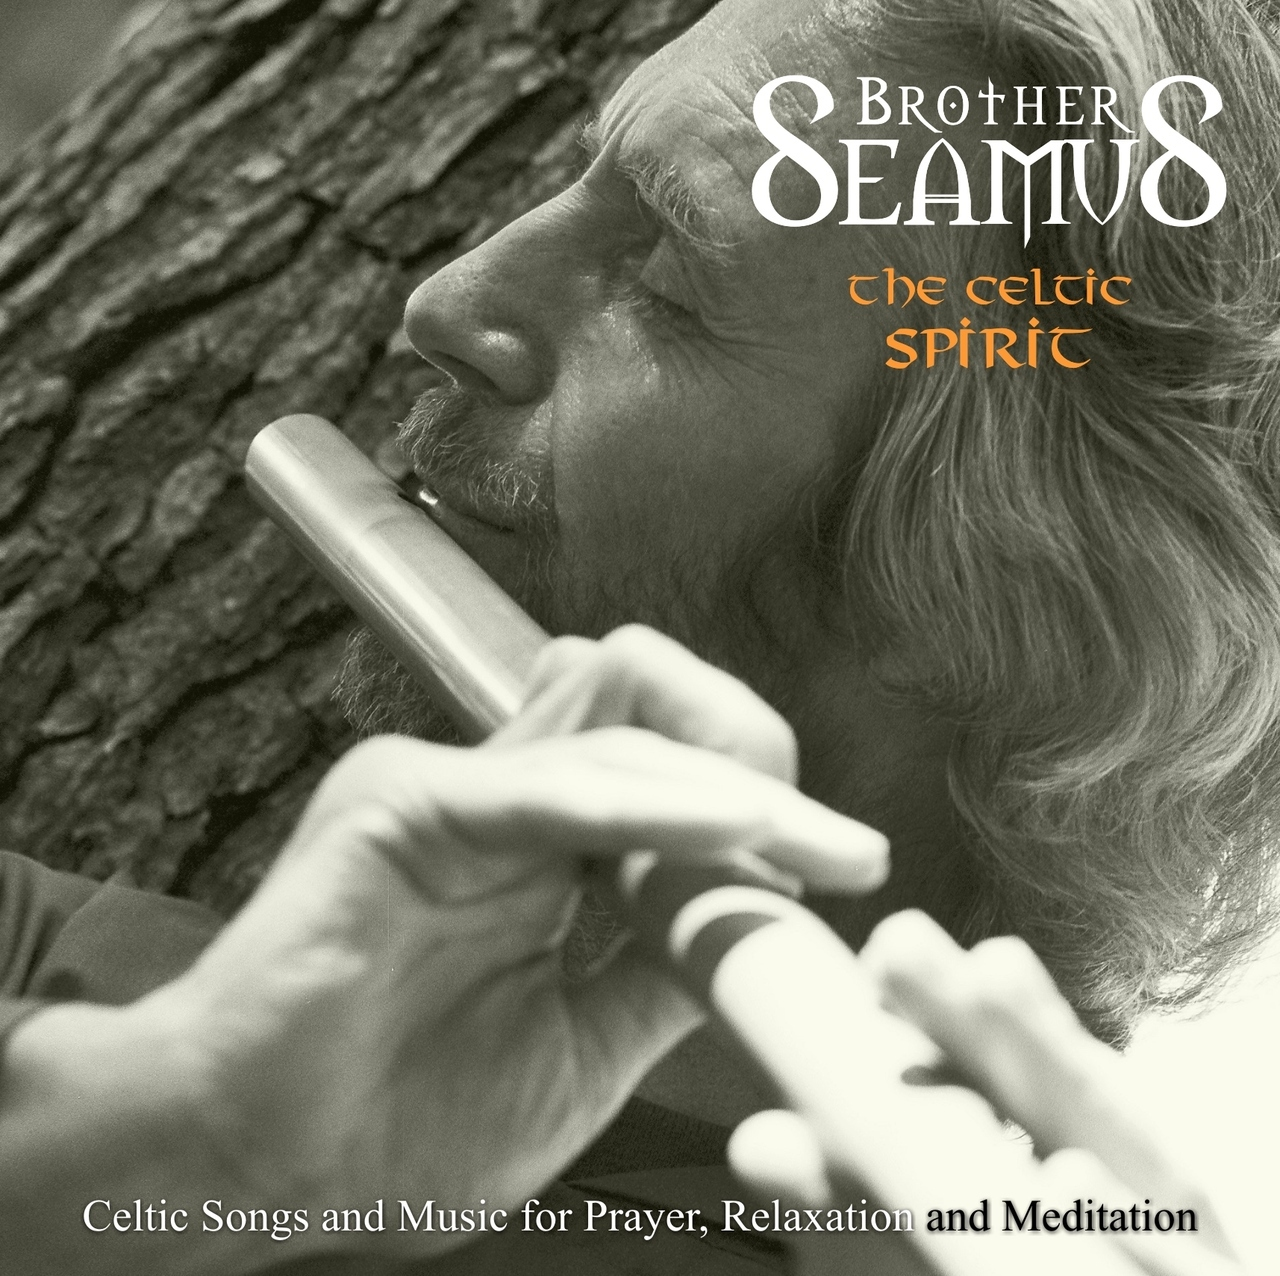 The celtic spirit cd  by brother seamus